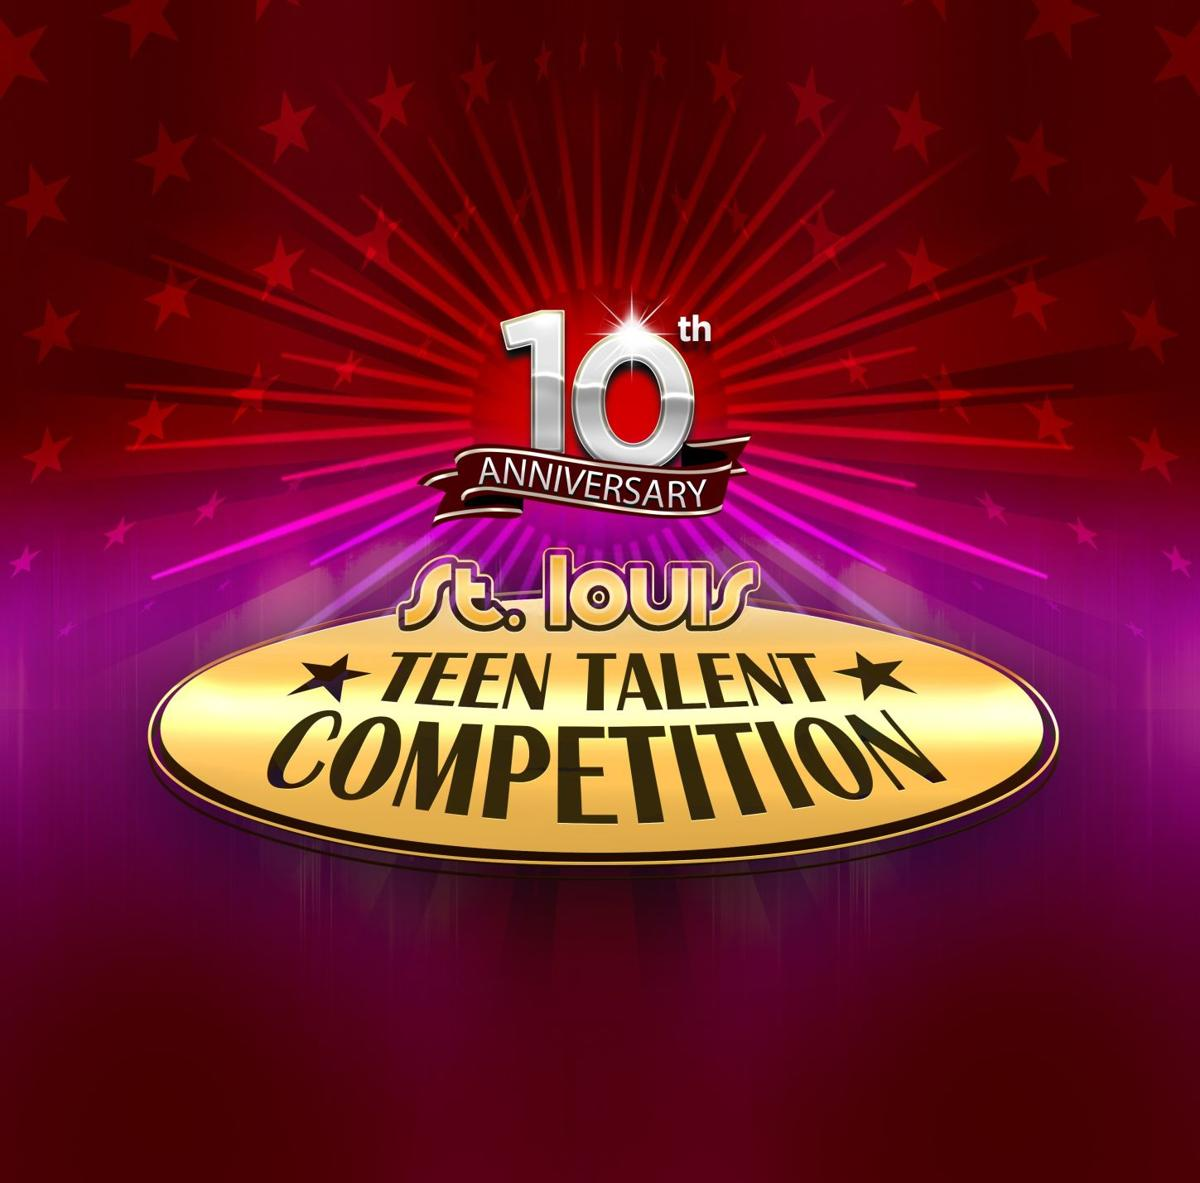 10th St. Louis Teen Talent Competition